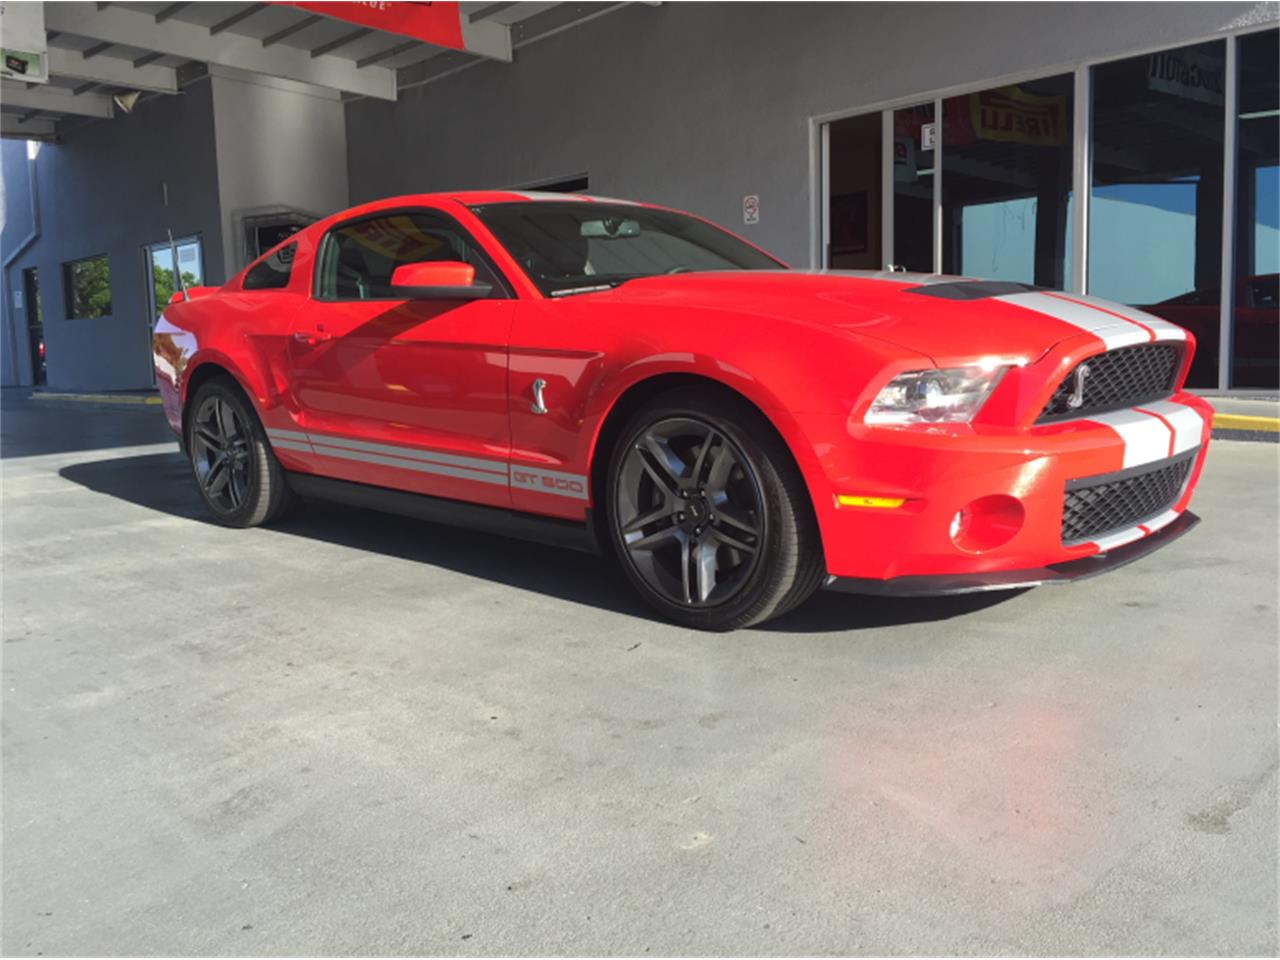 Modesto Car Dealers >> 2011 Ford Mustang Shelby GT500 for Sale | ClassicCars.com | CC-890923